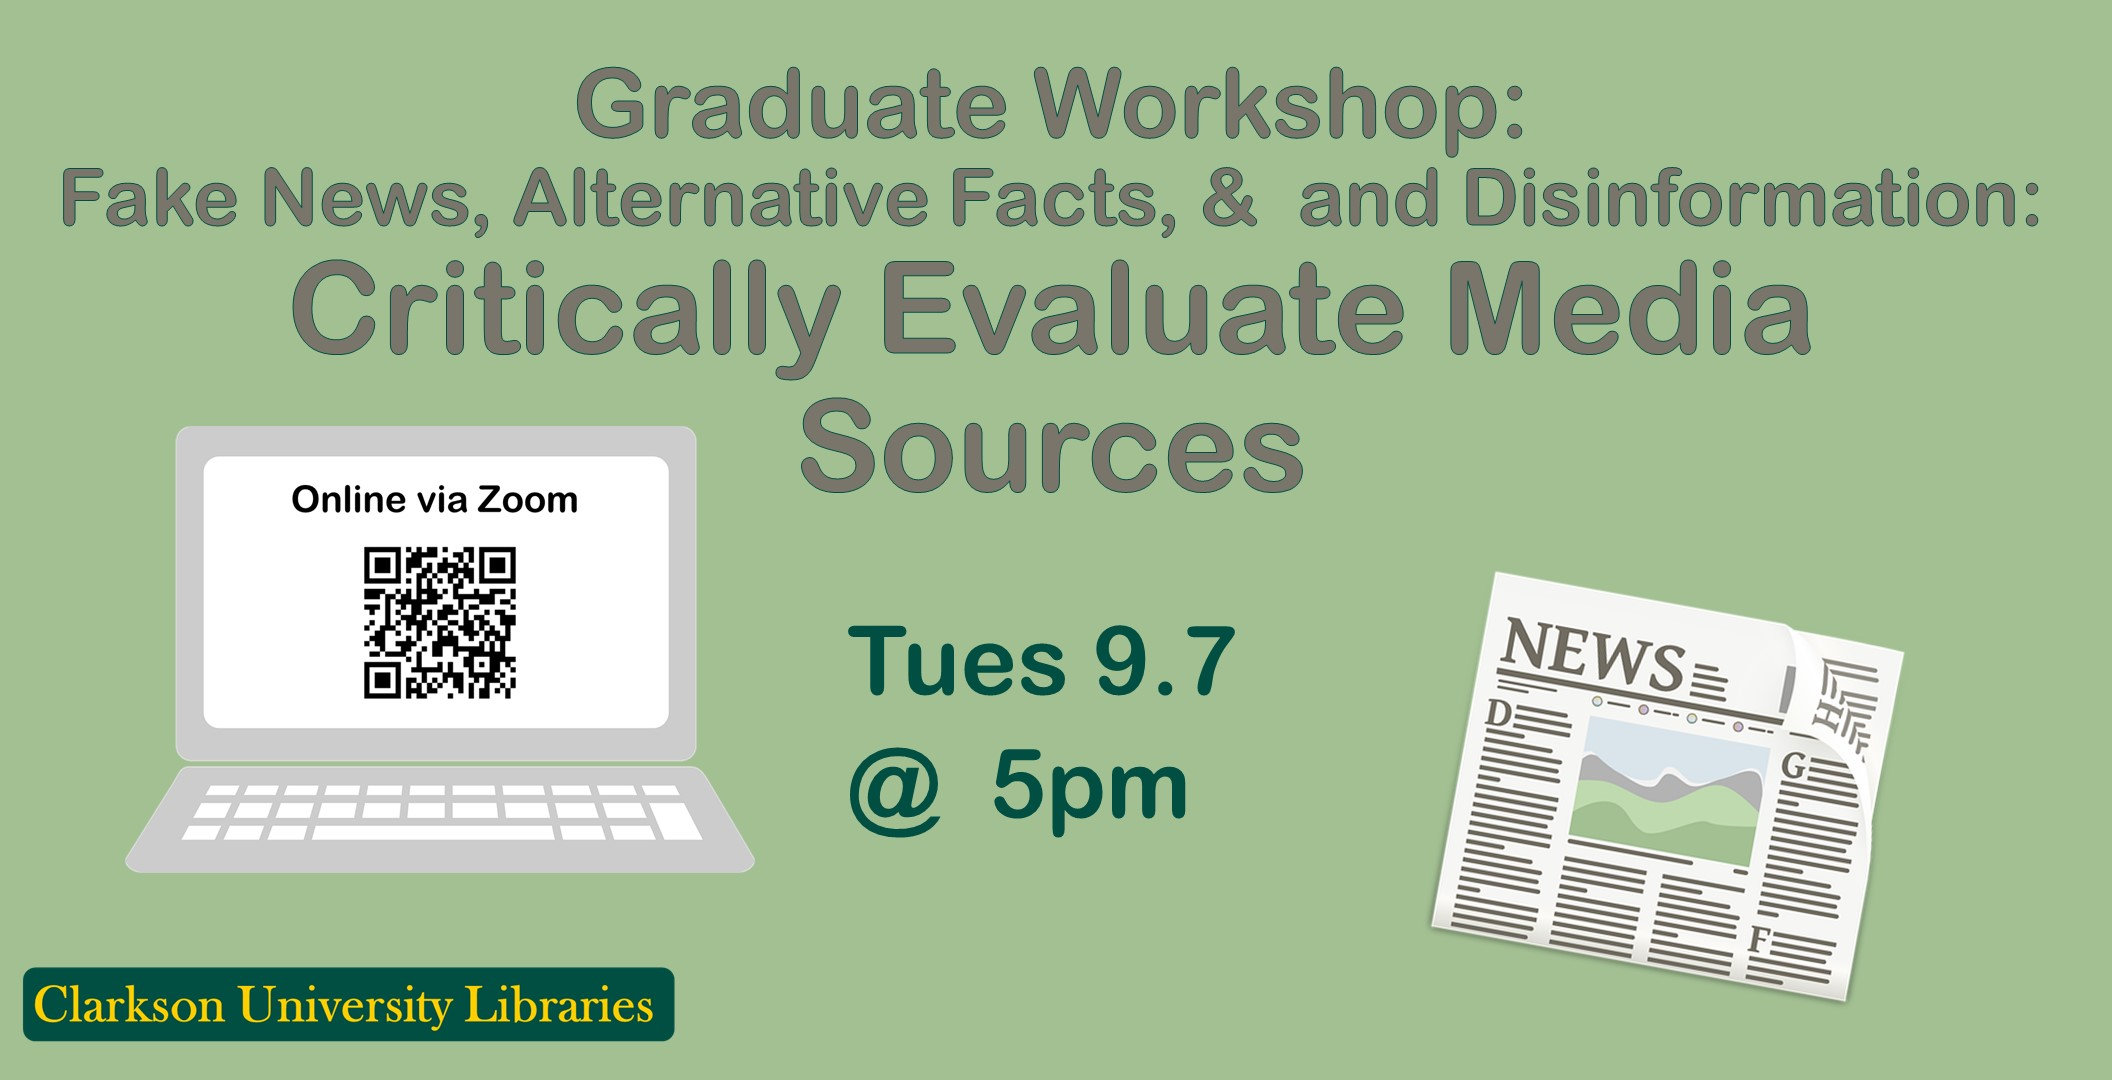 Graduate Workshop TODAY: Fake News, Alternative Facts, and Disinformation. Learning to Critically Evaluate Media Sources